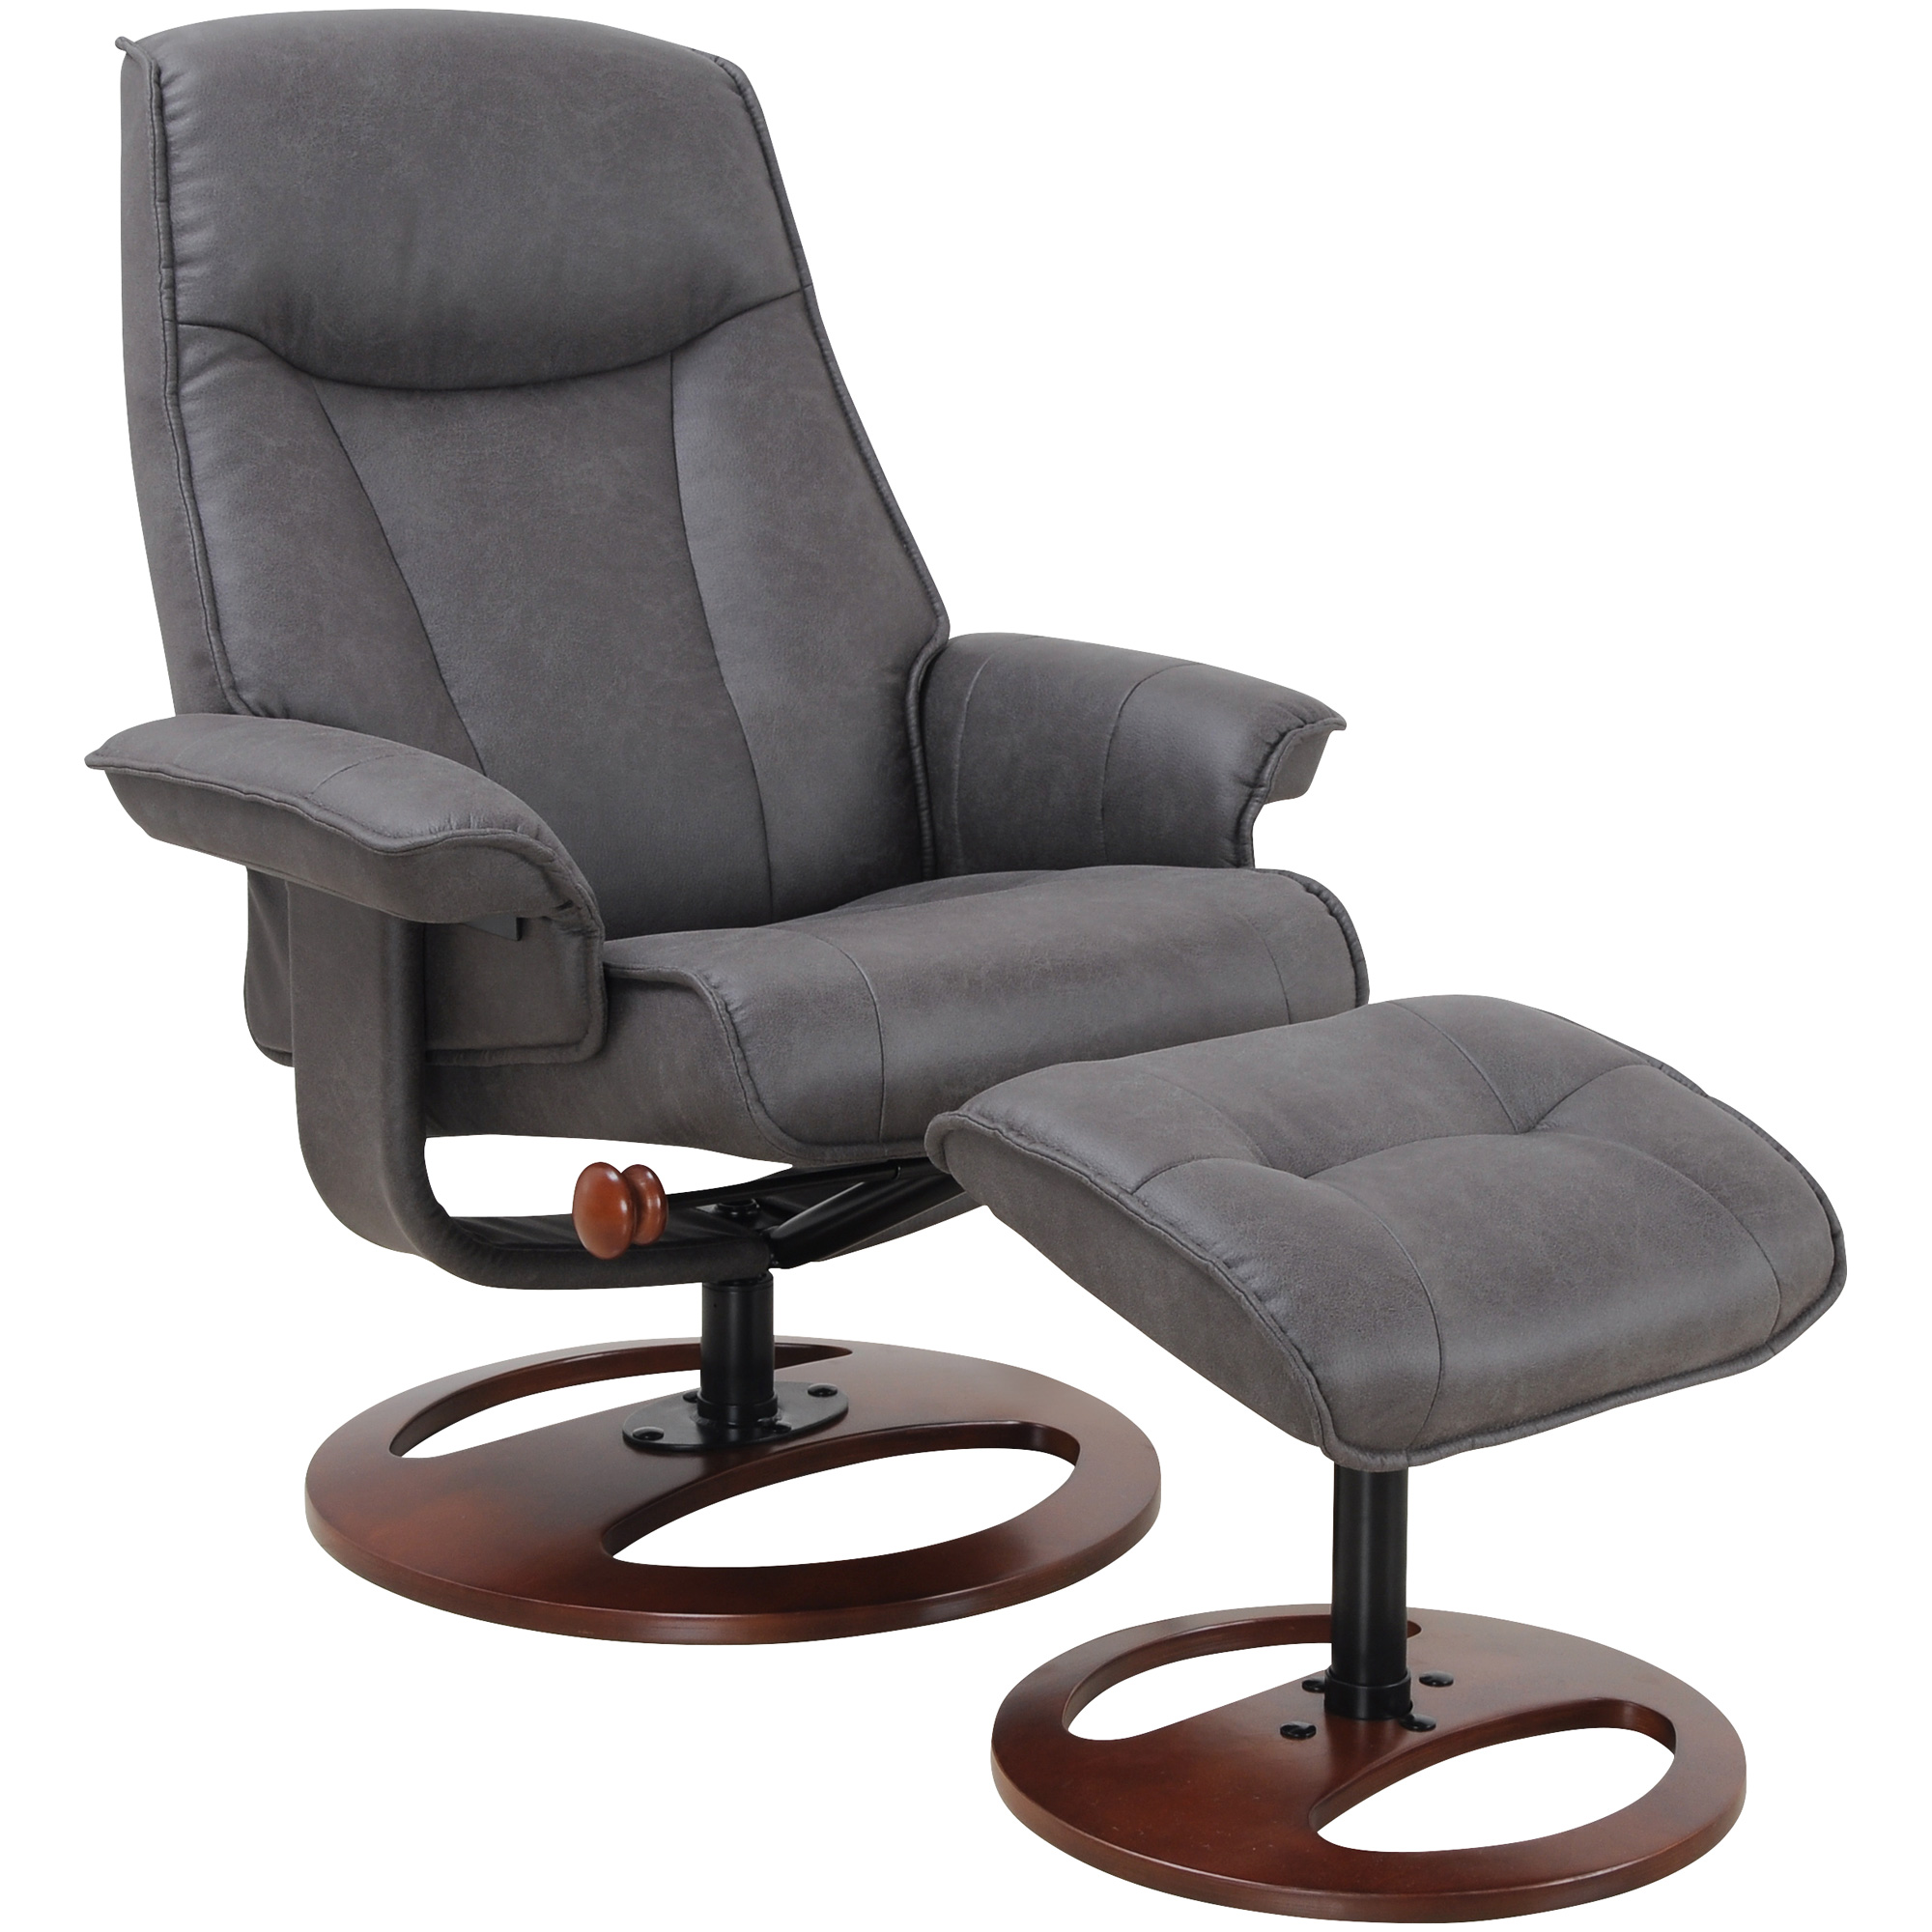 Benchmaster | Heritage Graphite Recliner Chair with Ottoman